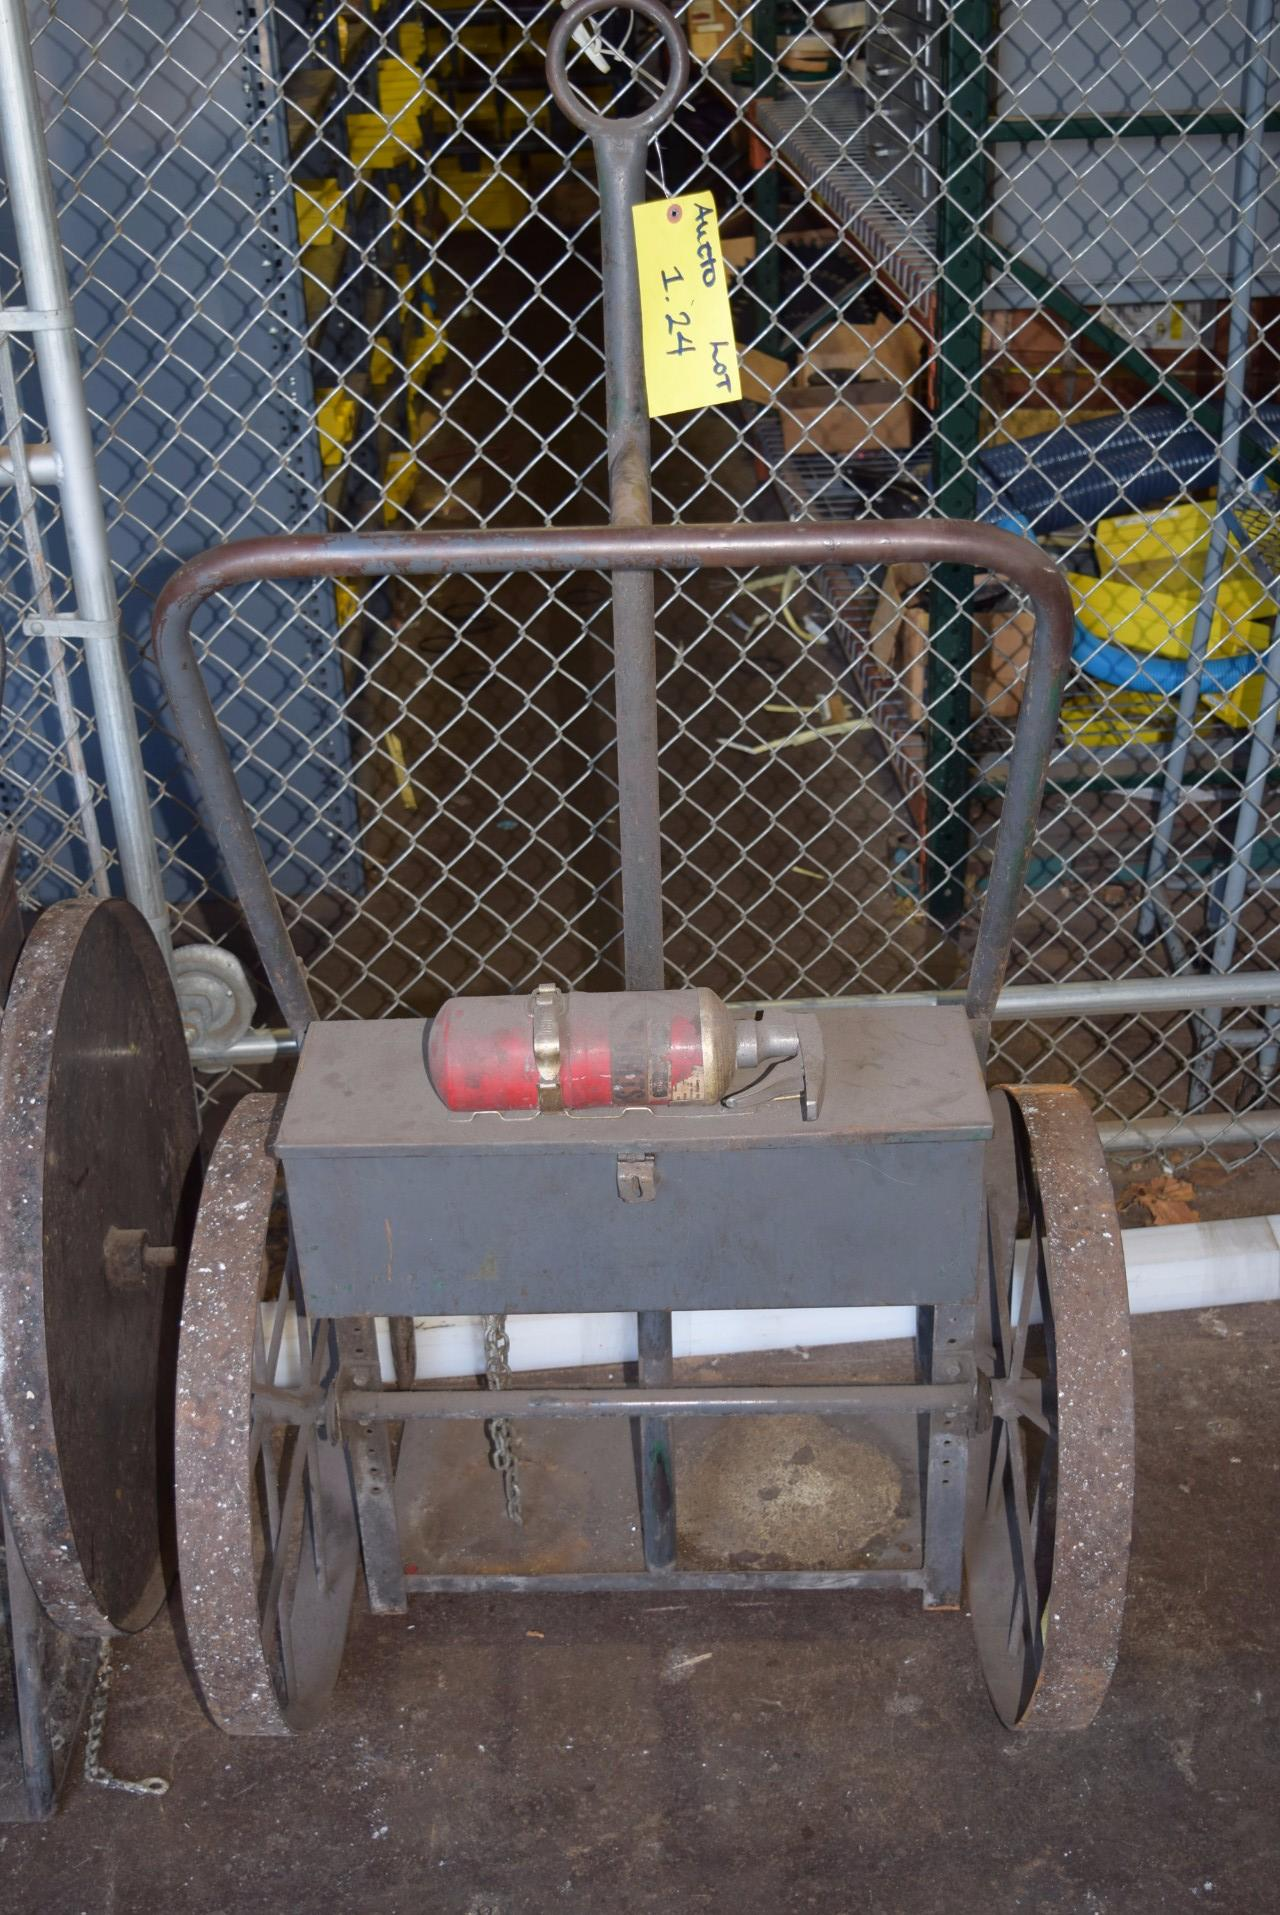 COMPRESSED AIR TANK ROLLING CART